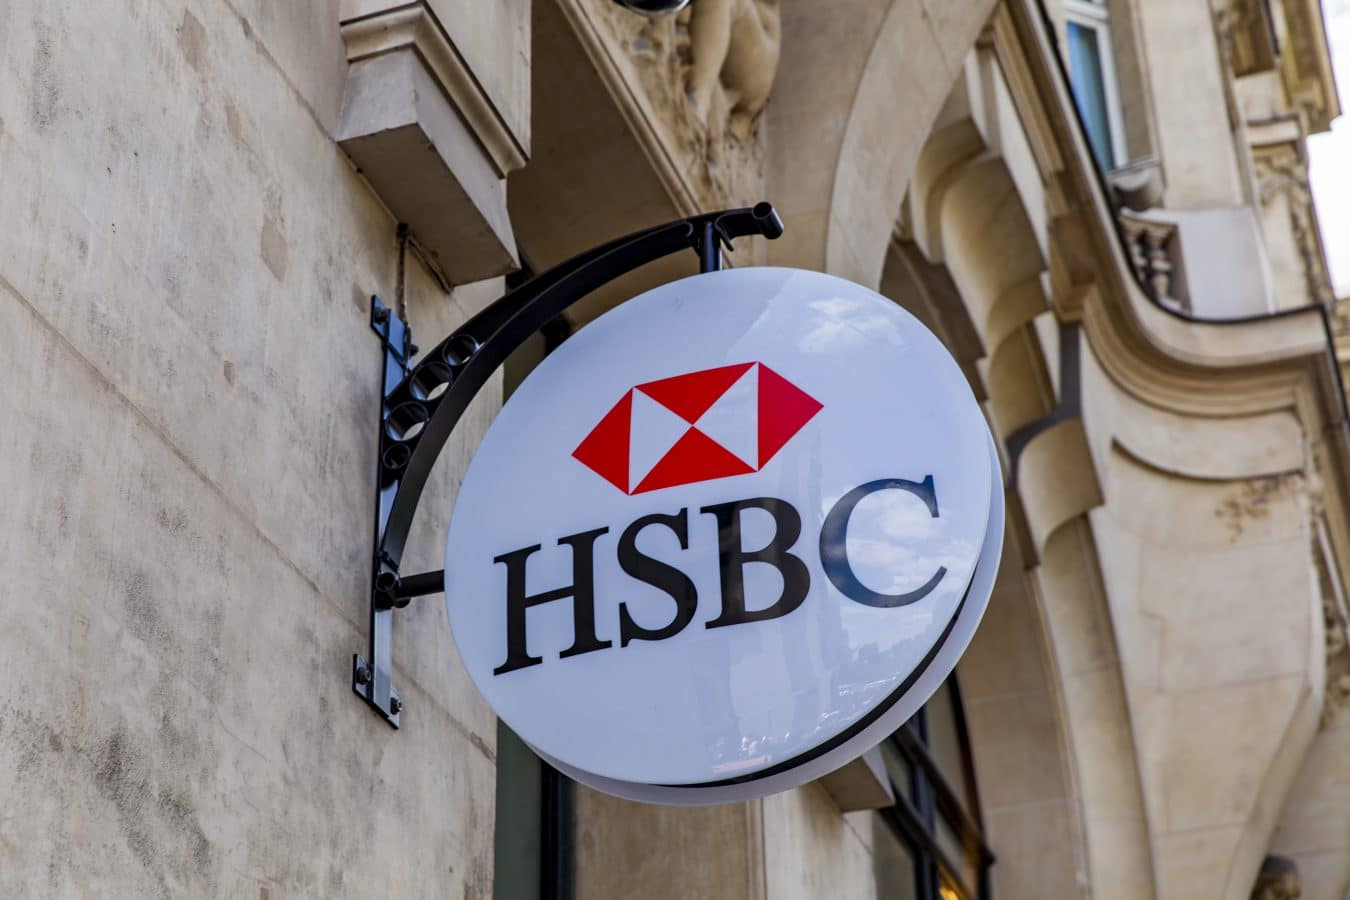 HSBC plans to lay off 10,000 jobs worldwide in attempt to cut costs